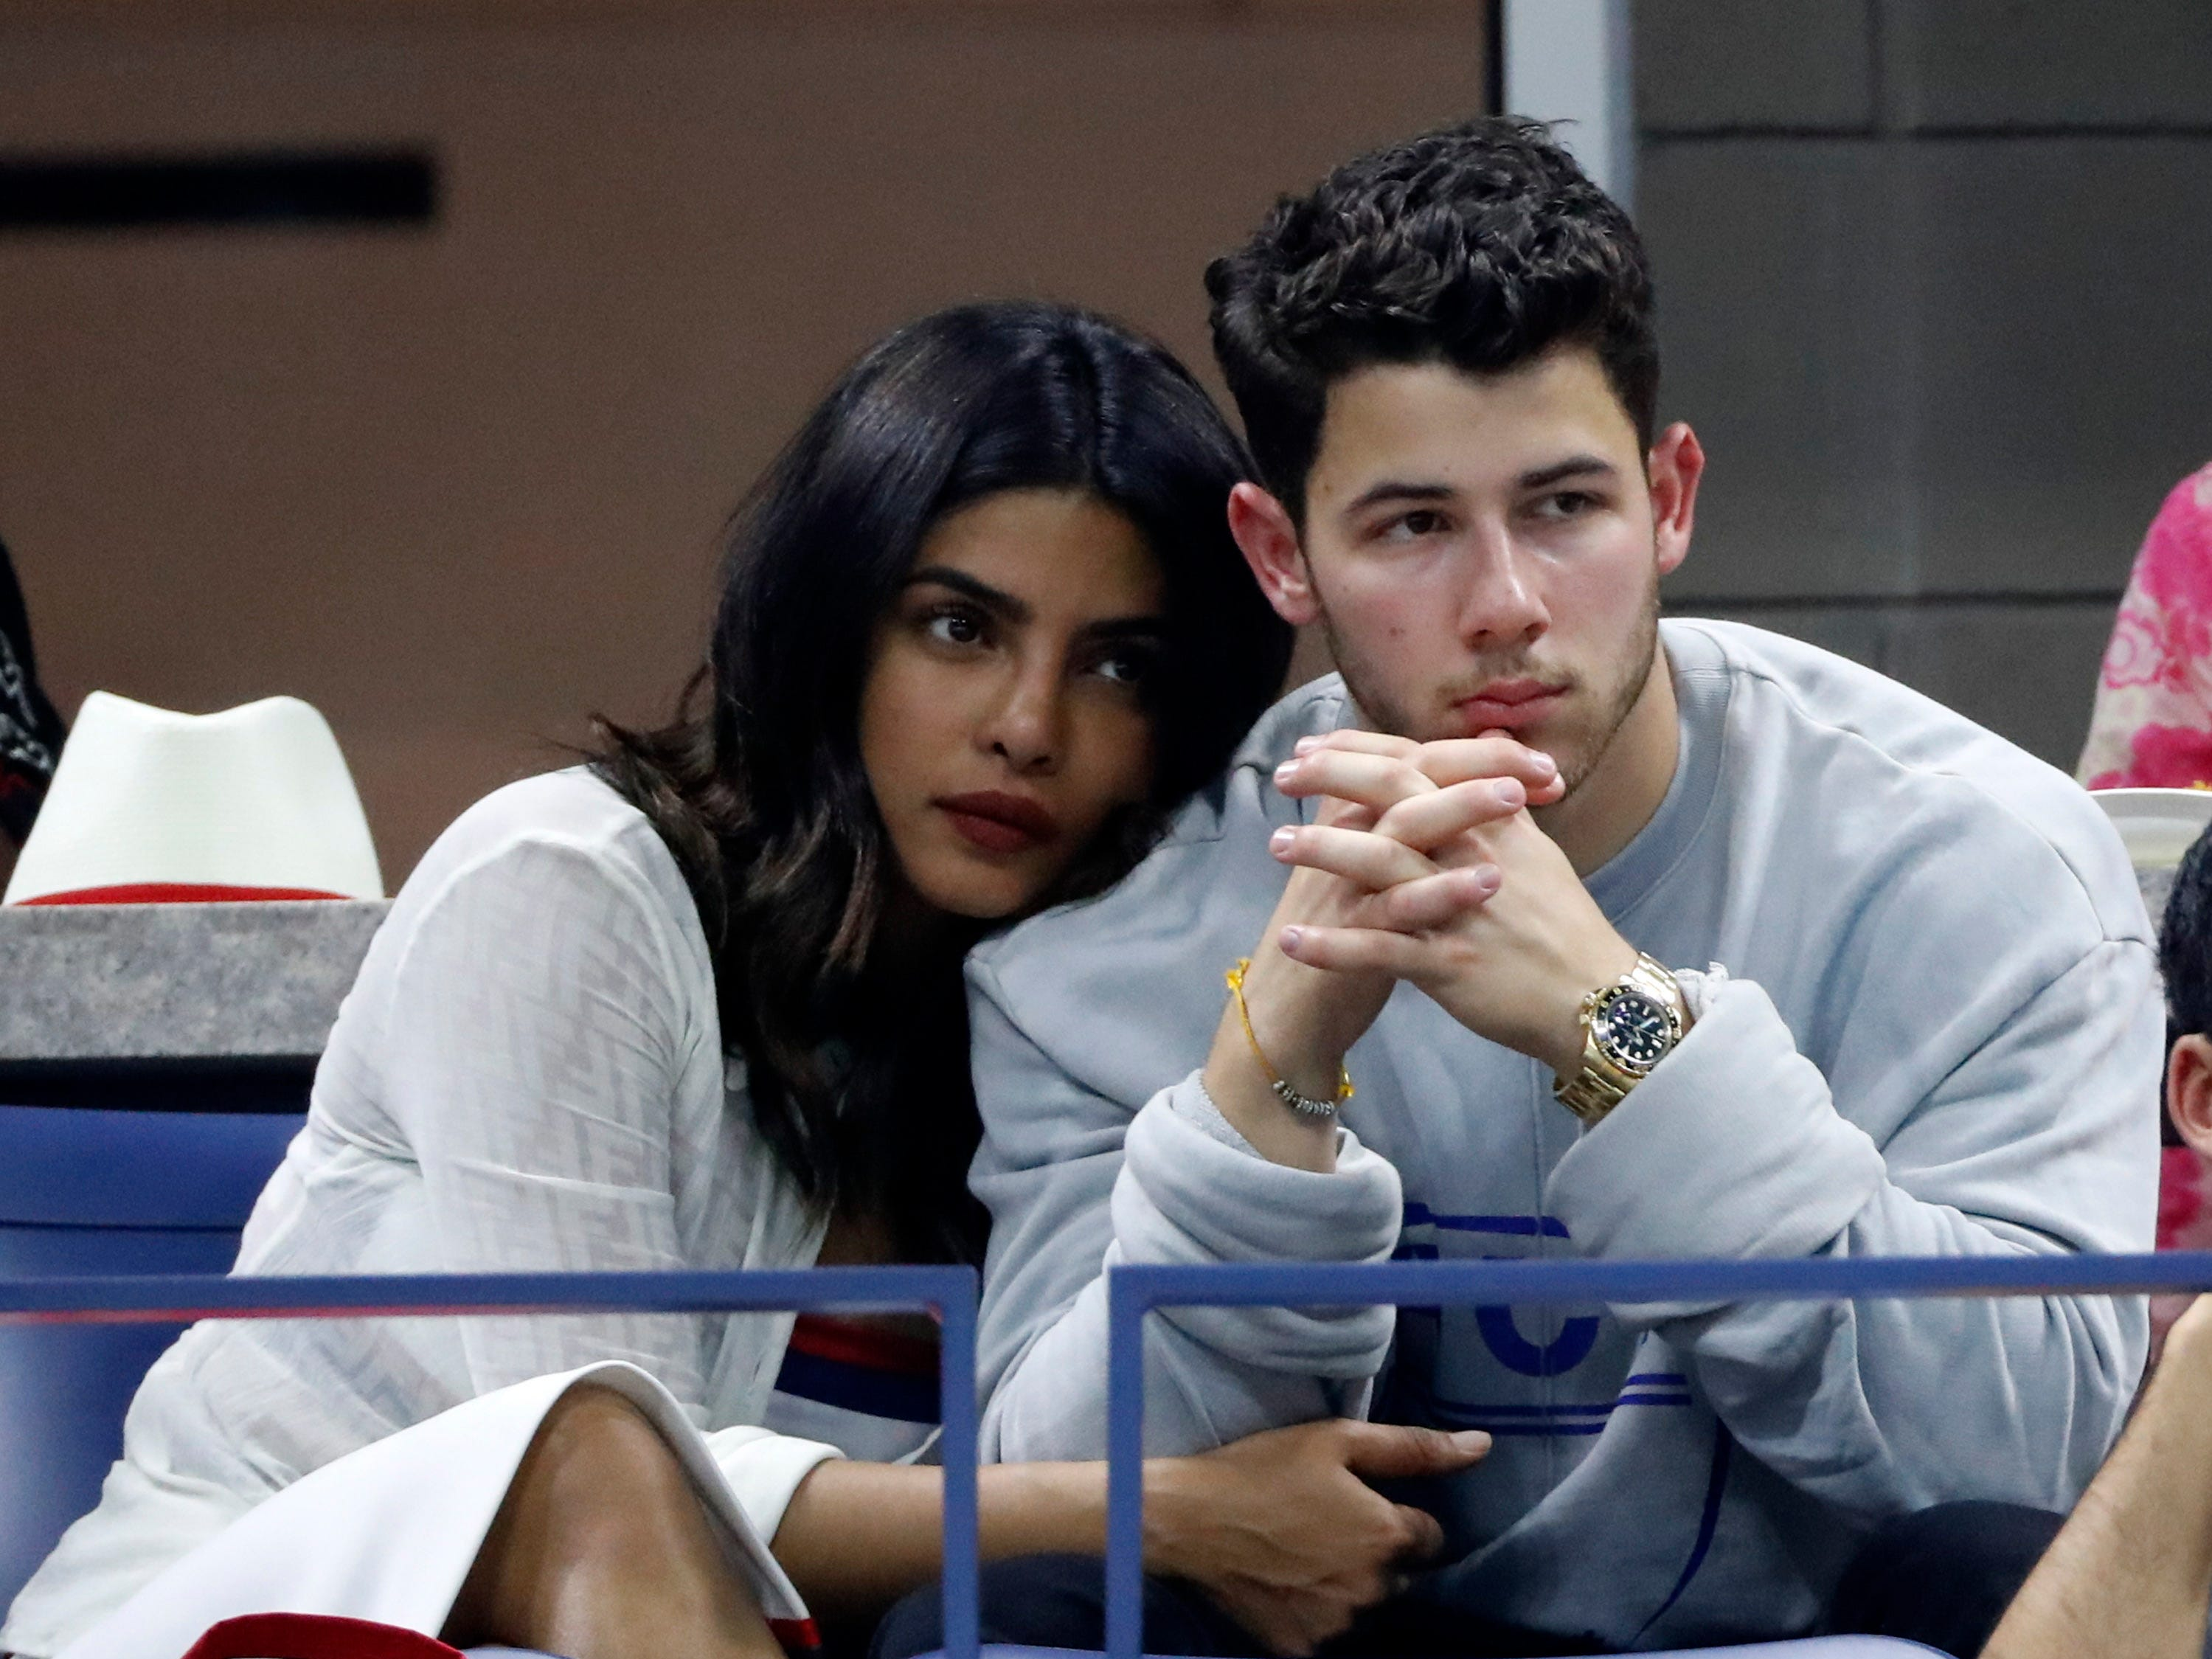 Indian actress Priyanka Chopra and her fiance Nick Jonas watch the Dominic Thiem vs. Rafael Nadal quarterfinal match.